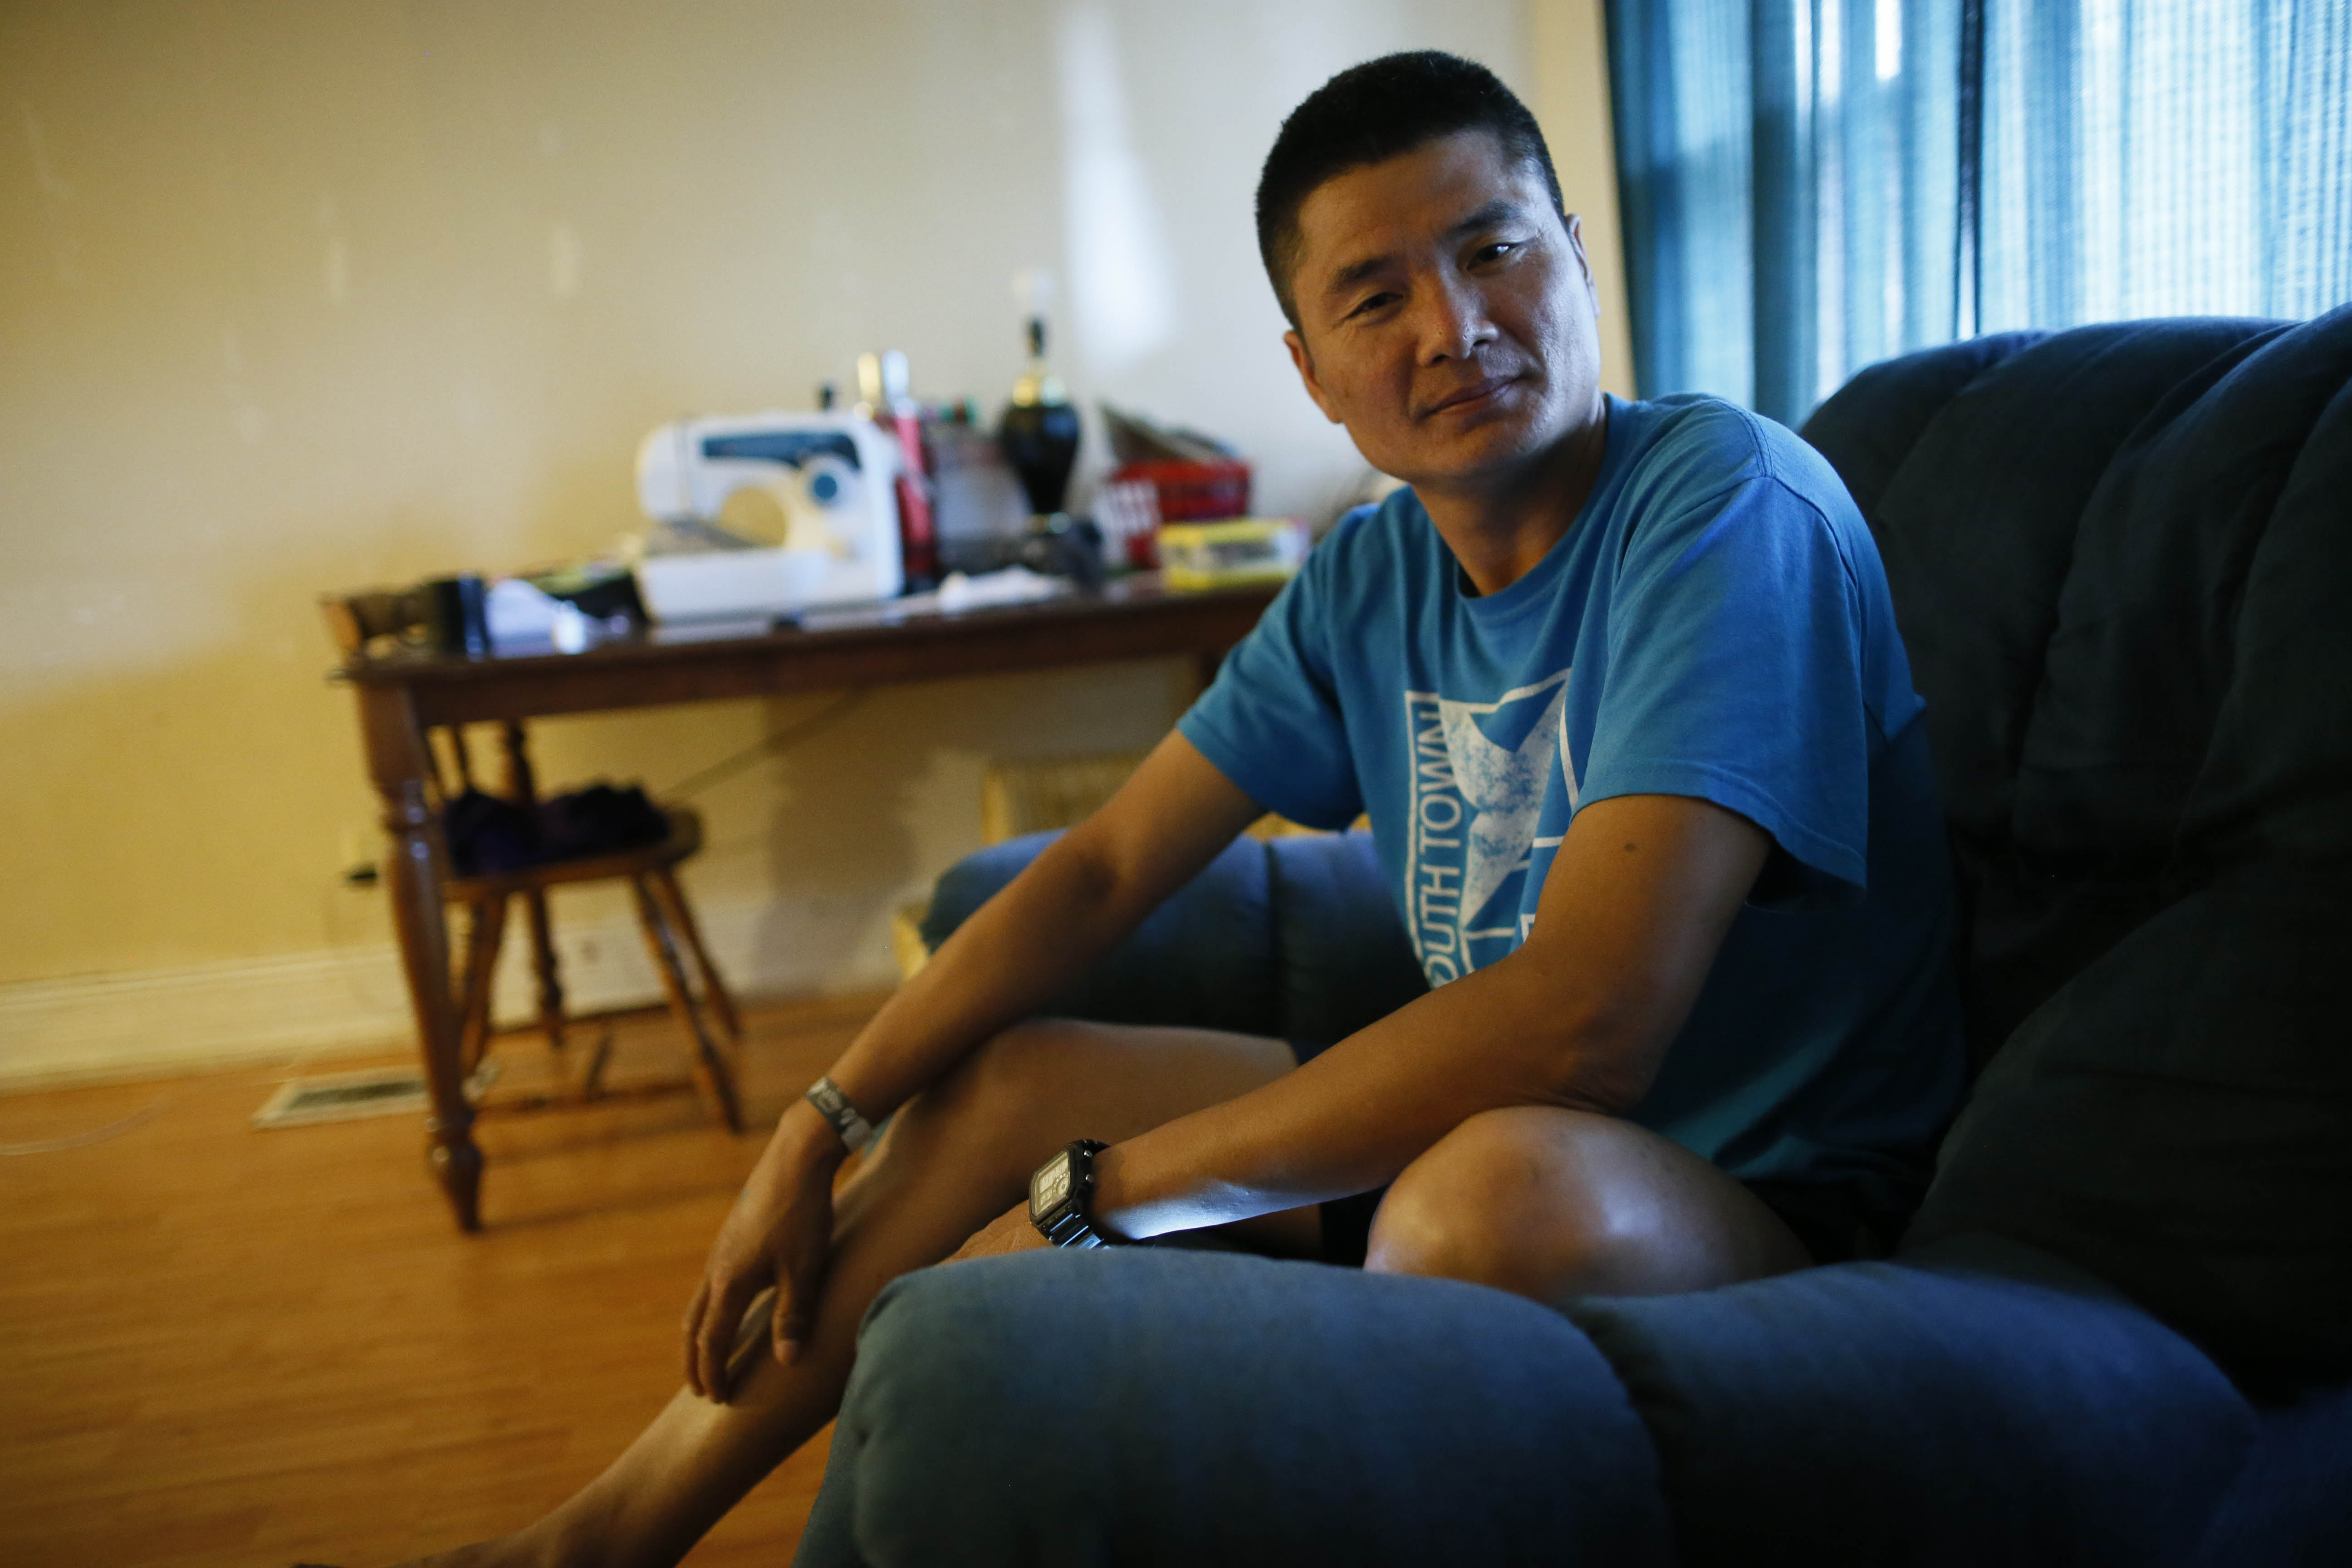 Nay Htoo, a Karen refugee who fled his home in the small village Kwee Ler Shu in Karen State, Myanmar, at a young age, relaxes in his Buffalo apartment Aug. 1. (Derek Gee/Buffalo News)